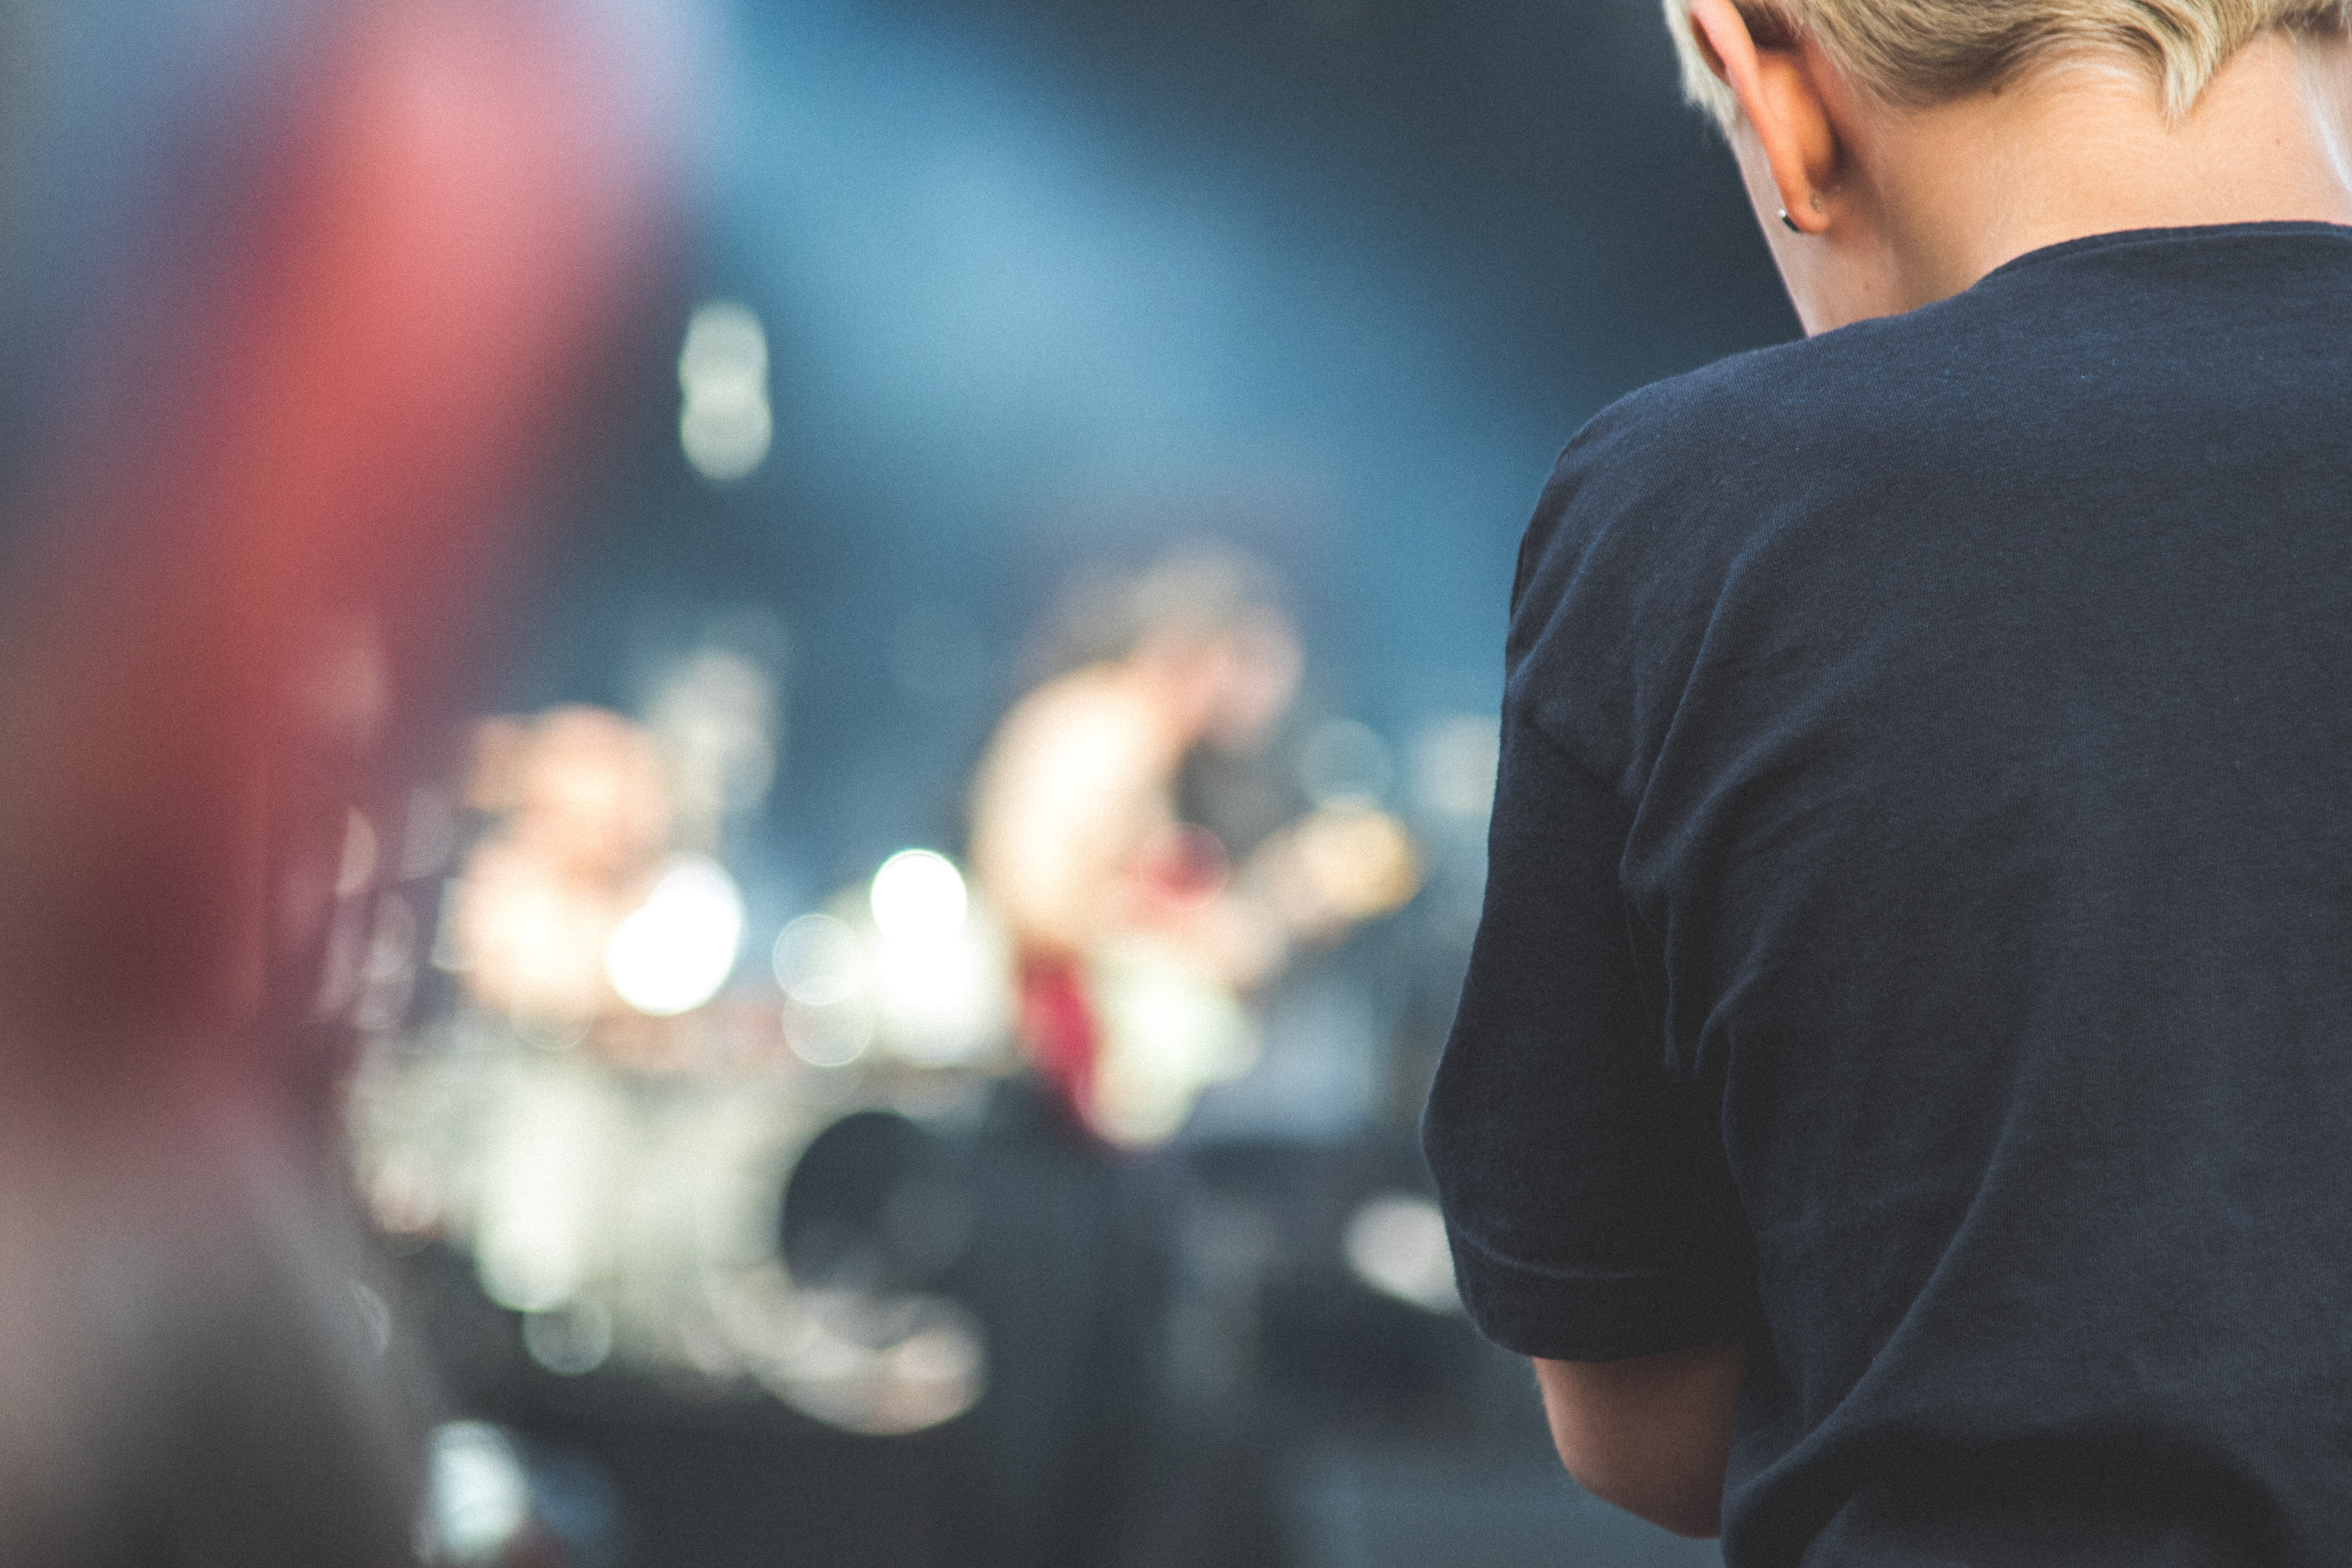 Standing behind a person with a blurry band playing on stage in the background